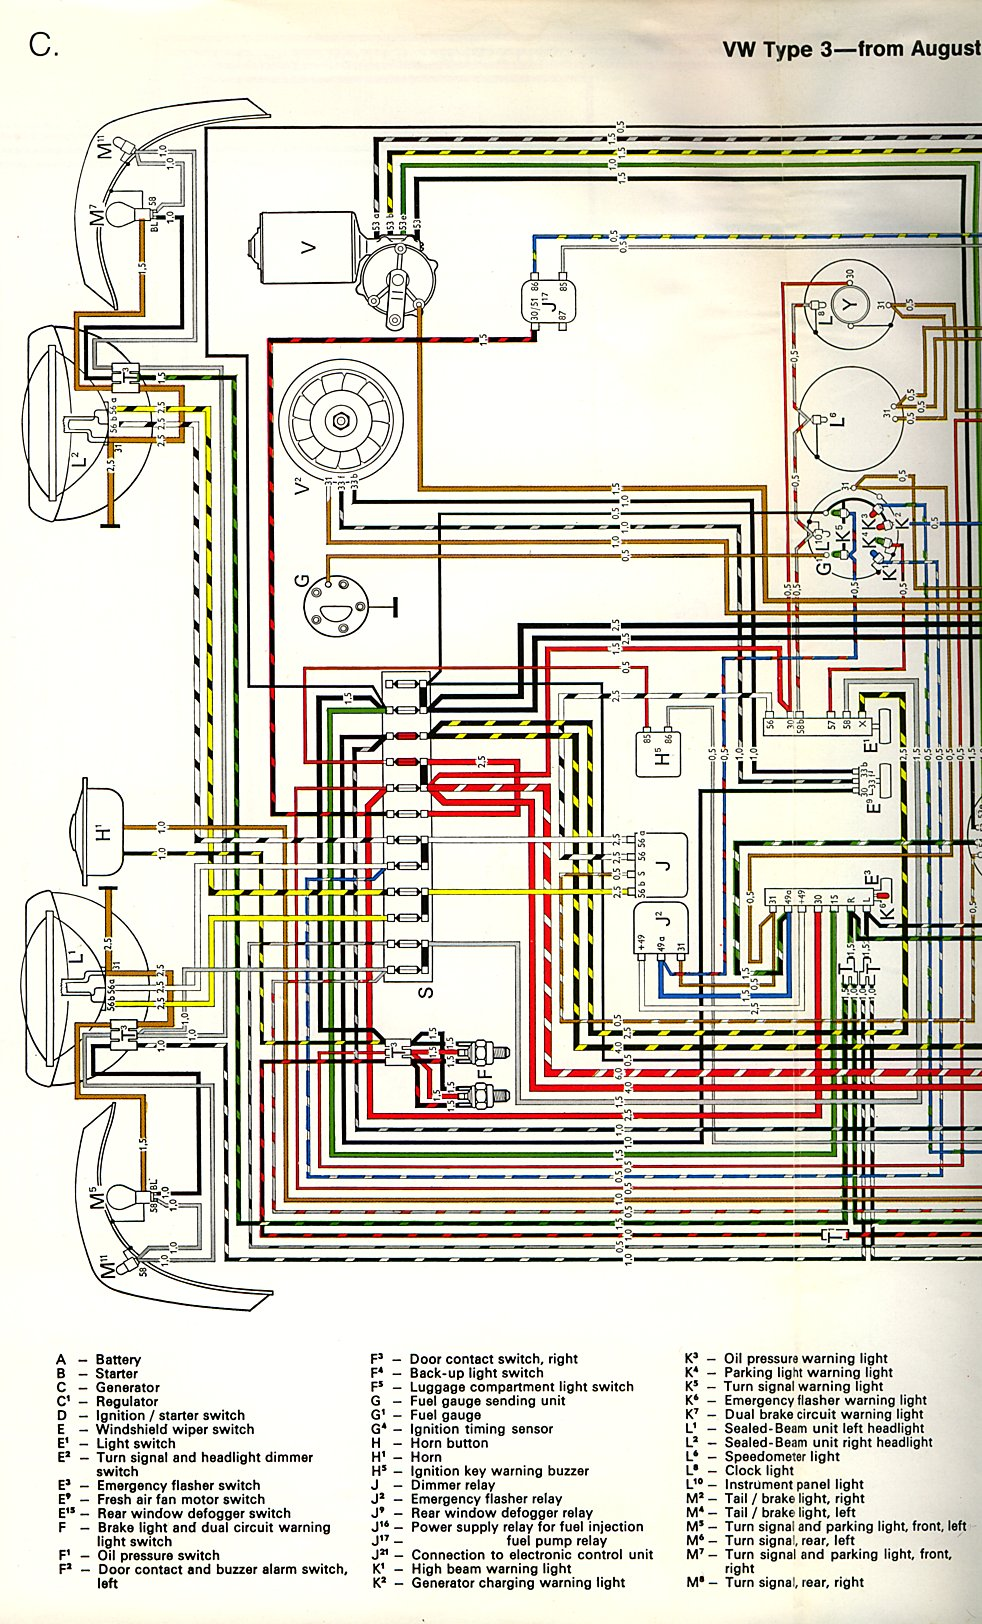 Wiring Diagrams For 1970 Vw Fast Back Diagram Fuse Box 1967 Beetle Engine Thesamba Com Type 3 Rh 1978